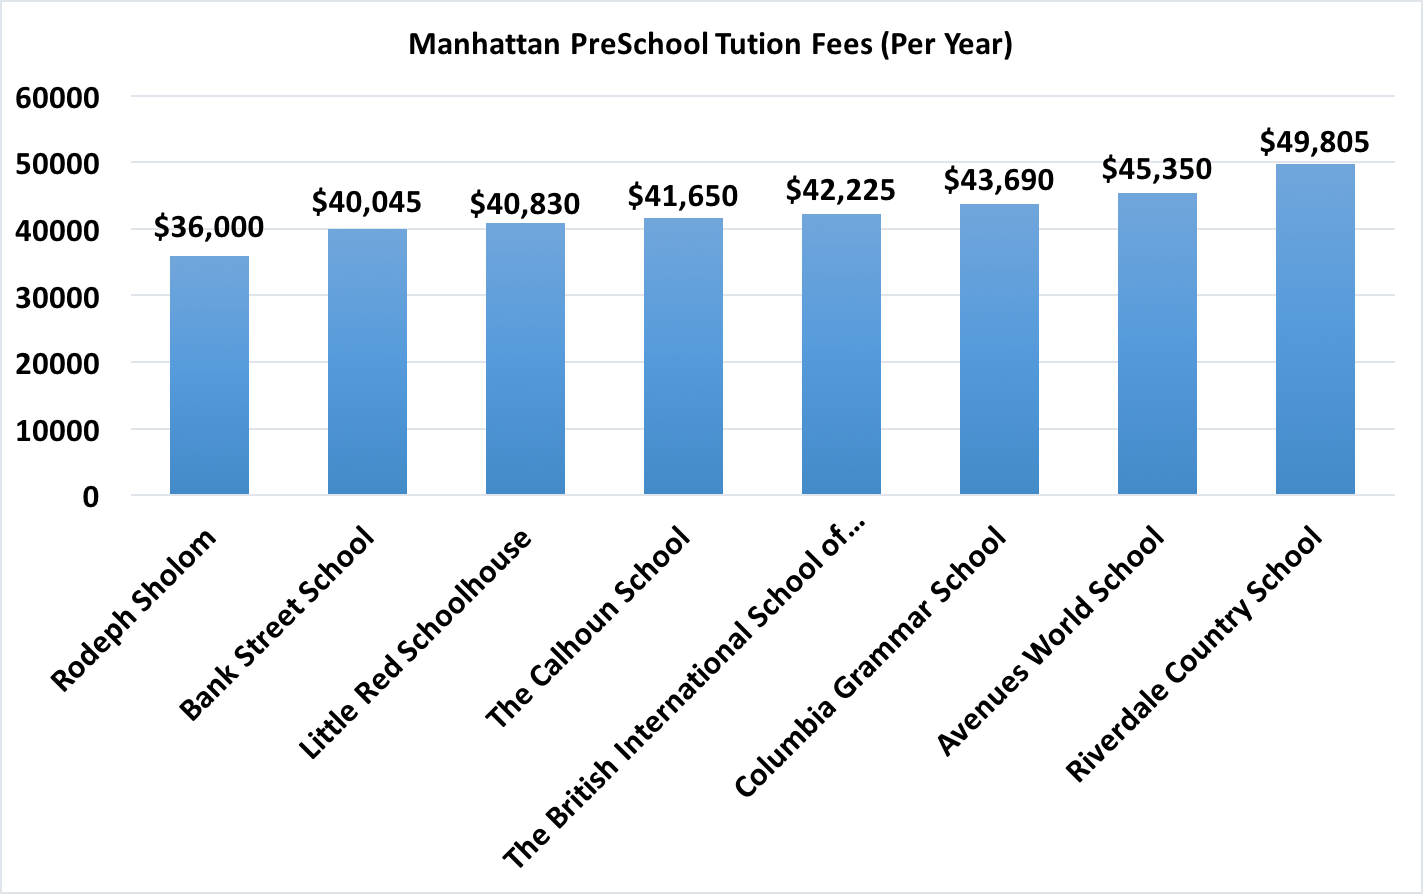 One Of The Less Costly Insutions You Re Paying A Tuition Bill 30 000 For Riverdale Country School Costliest Schools In Manhattan